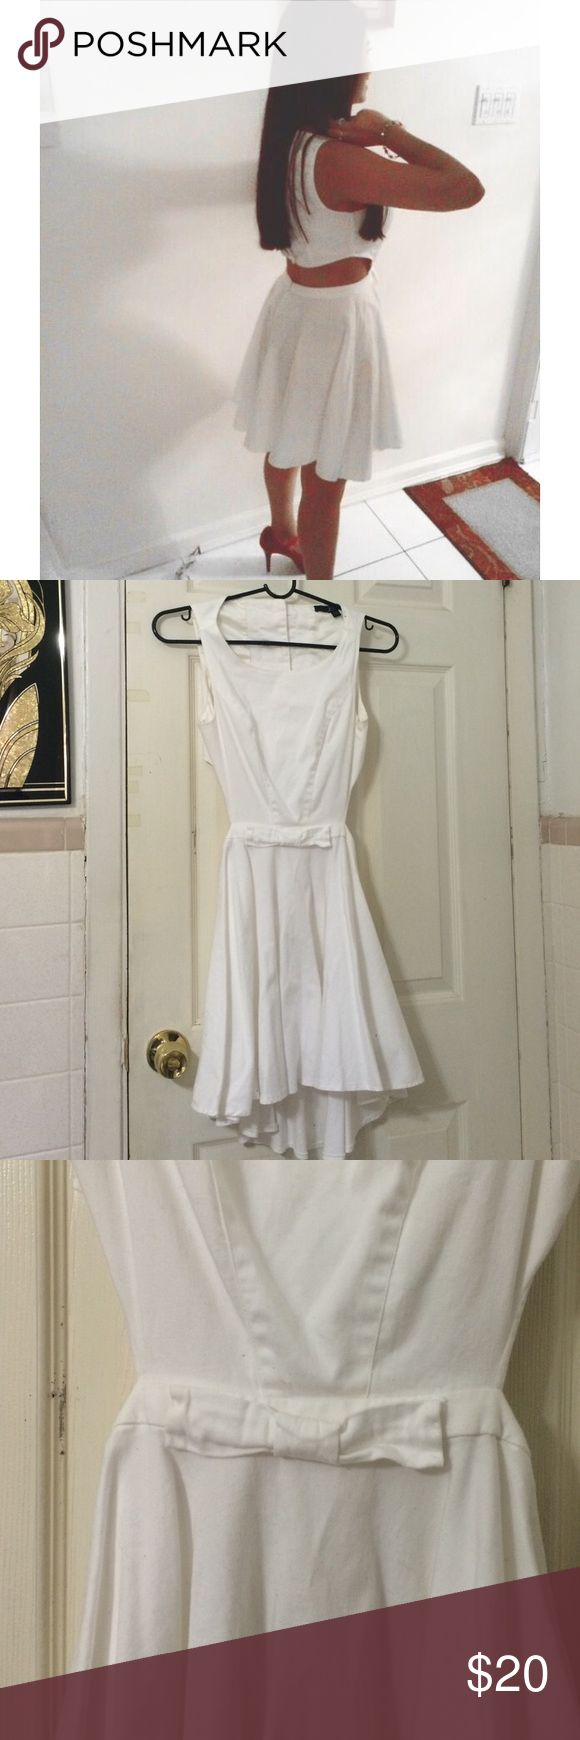 Guess dress Beautiful white open back guess dress. Two balls of two buttons are missing. Other than that it is in good condition. Guess Dresses